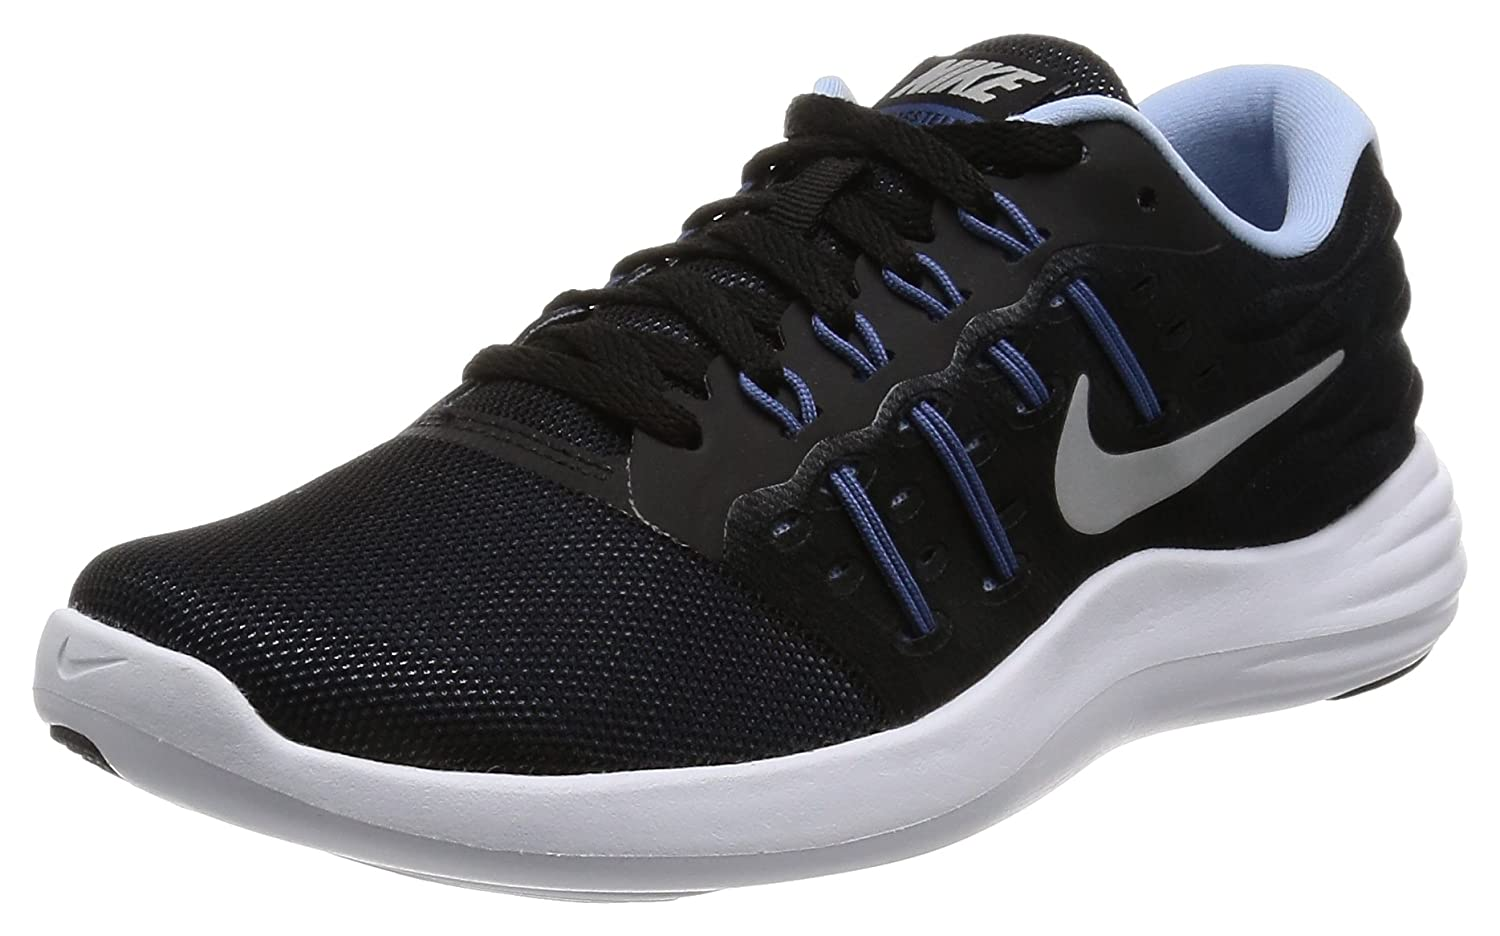 NIKE Women's Lunarstelos Running Shoe B008XZMI0O 7 M US|Blue Glow/Black/Gamma Blue/White